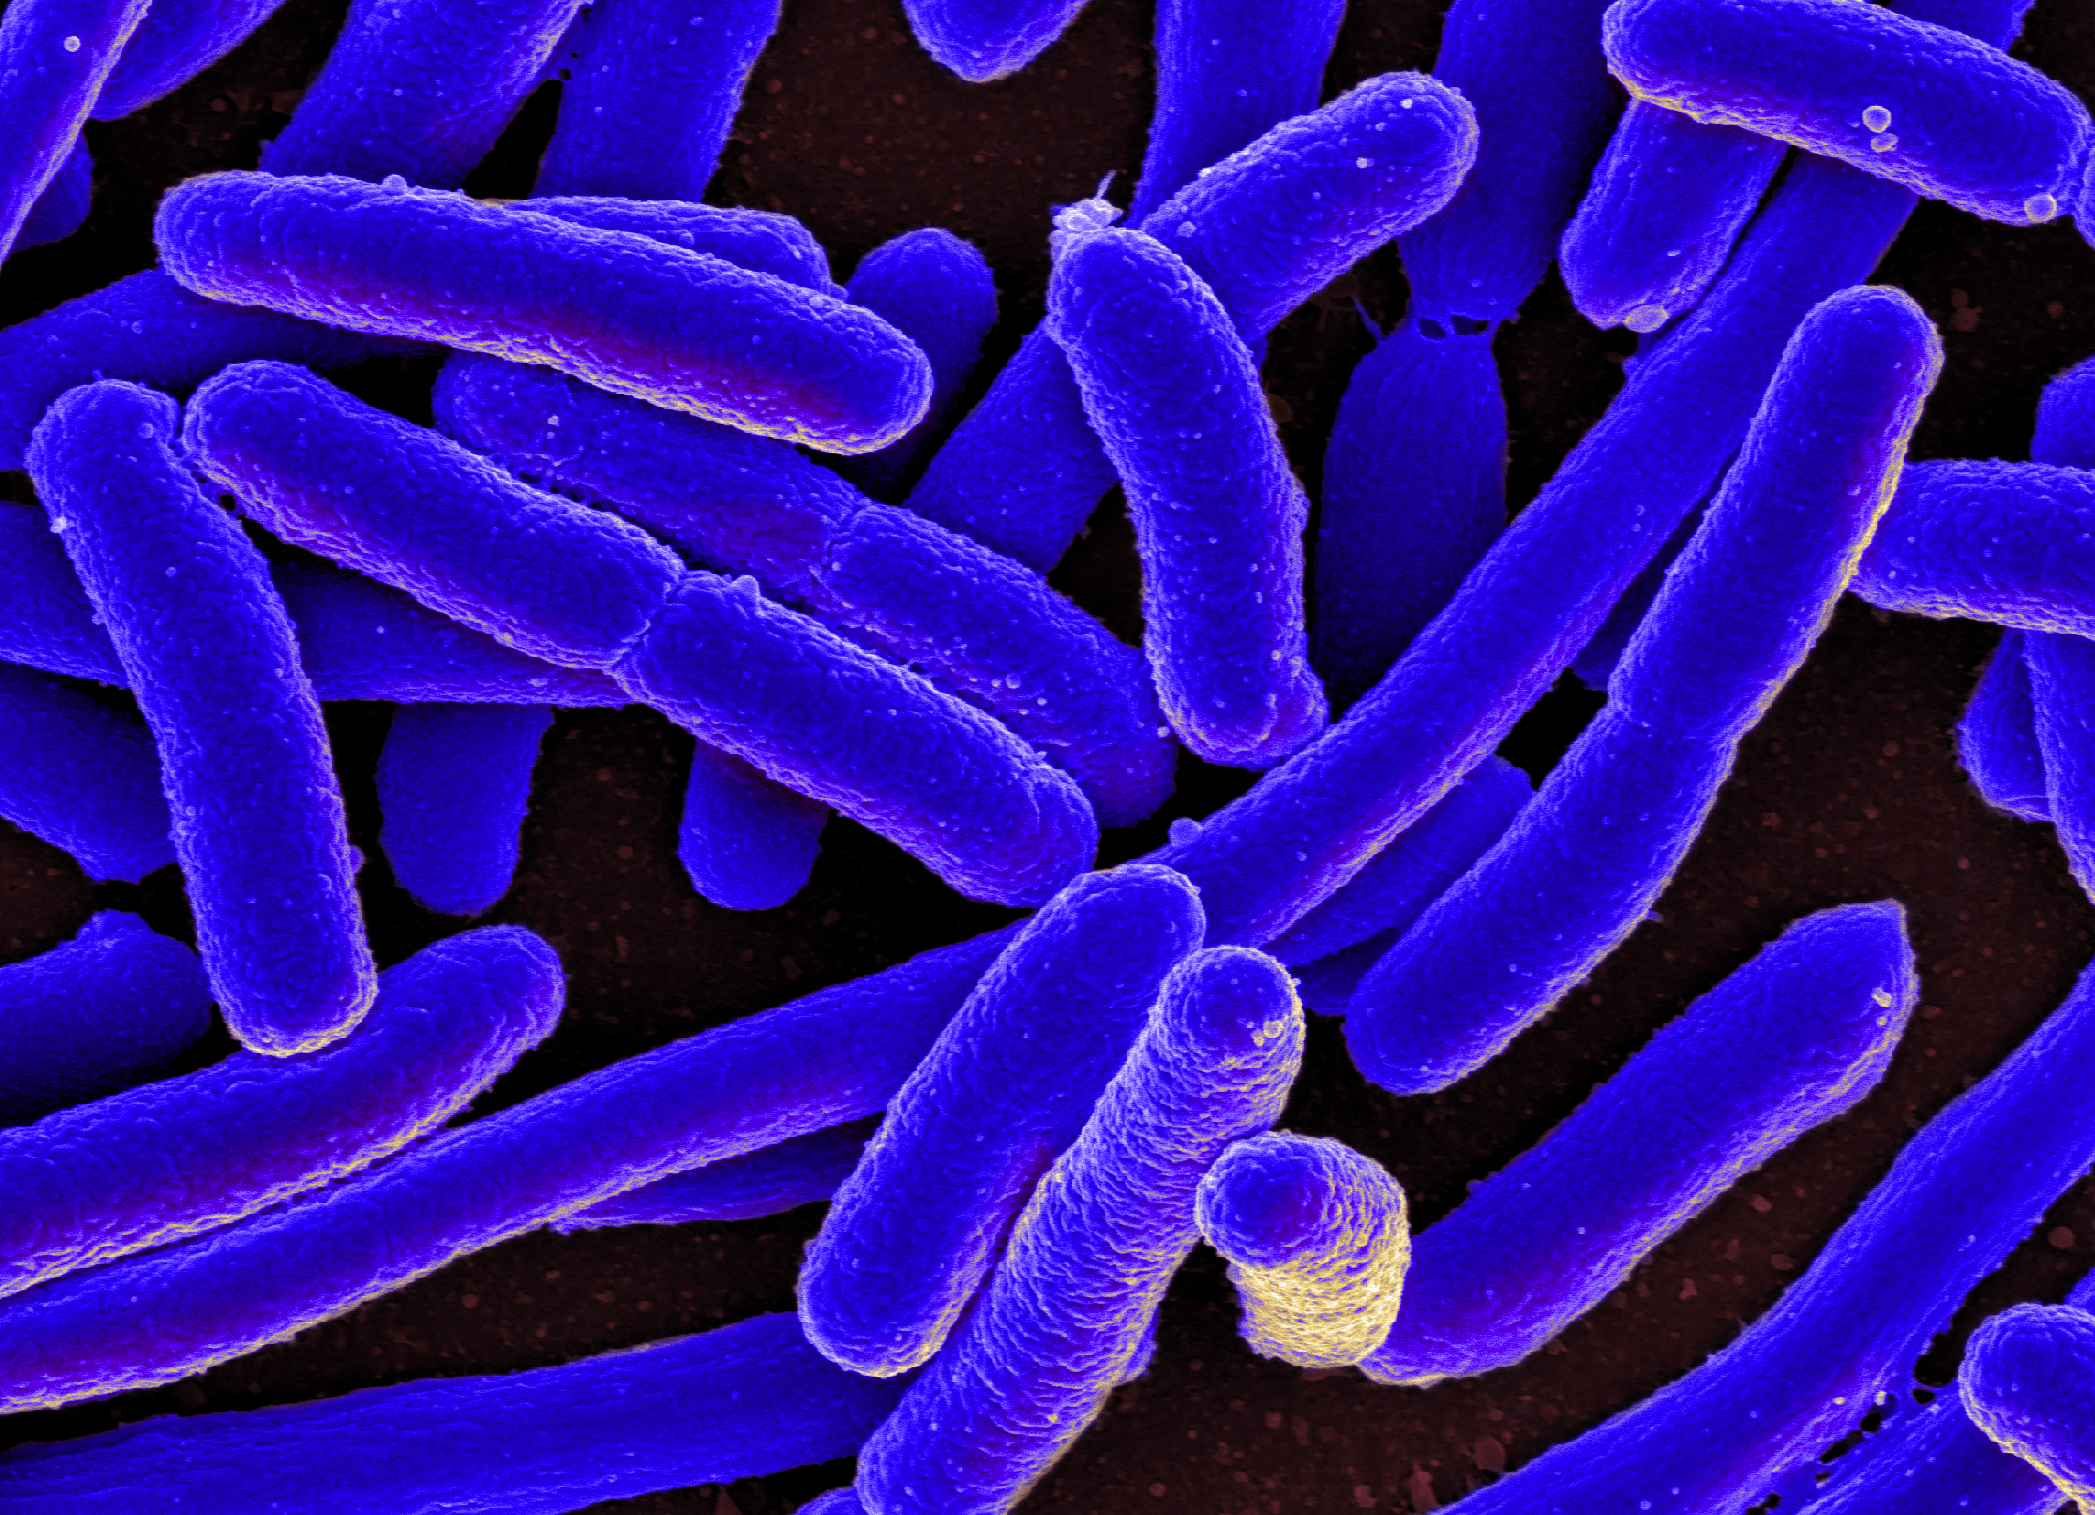 Cylindrical bacterial cells are shown in blue against a black background